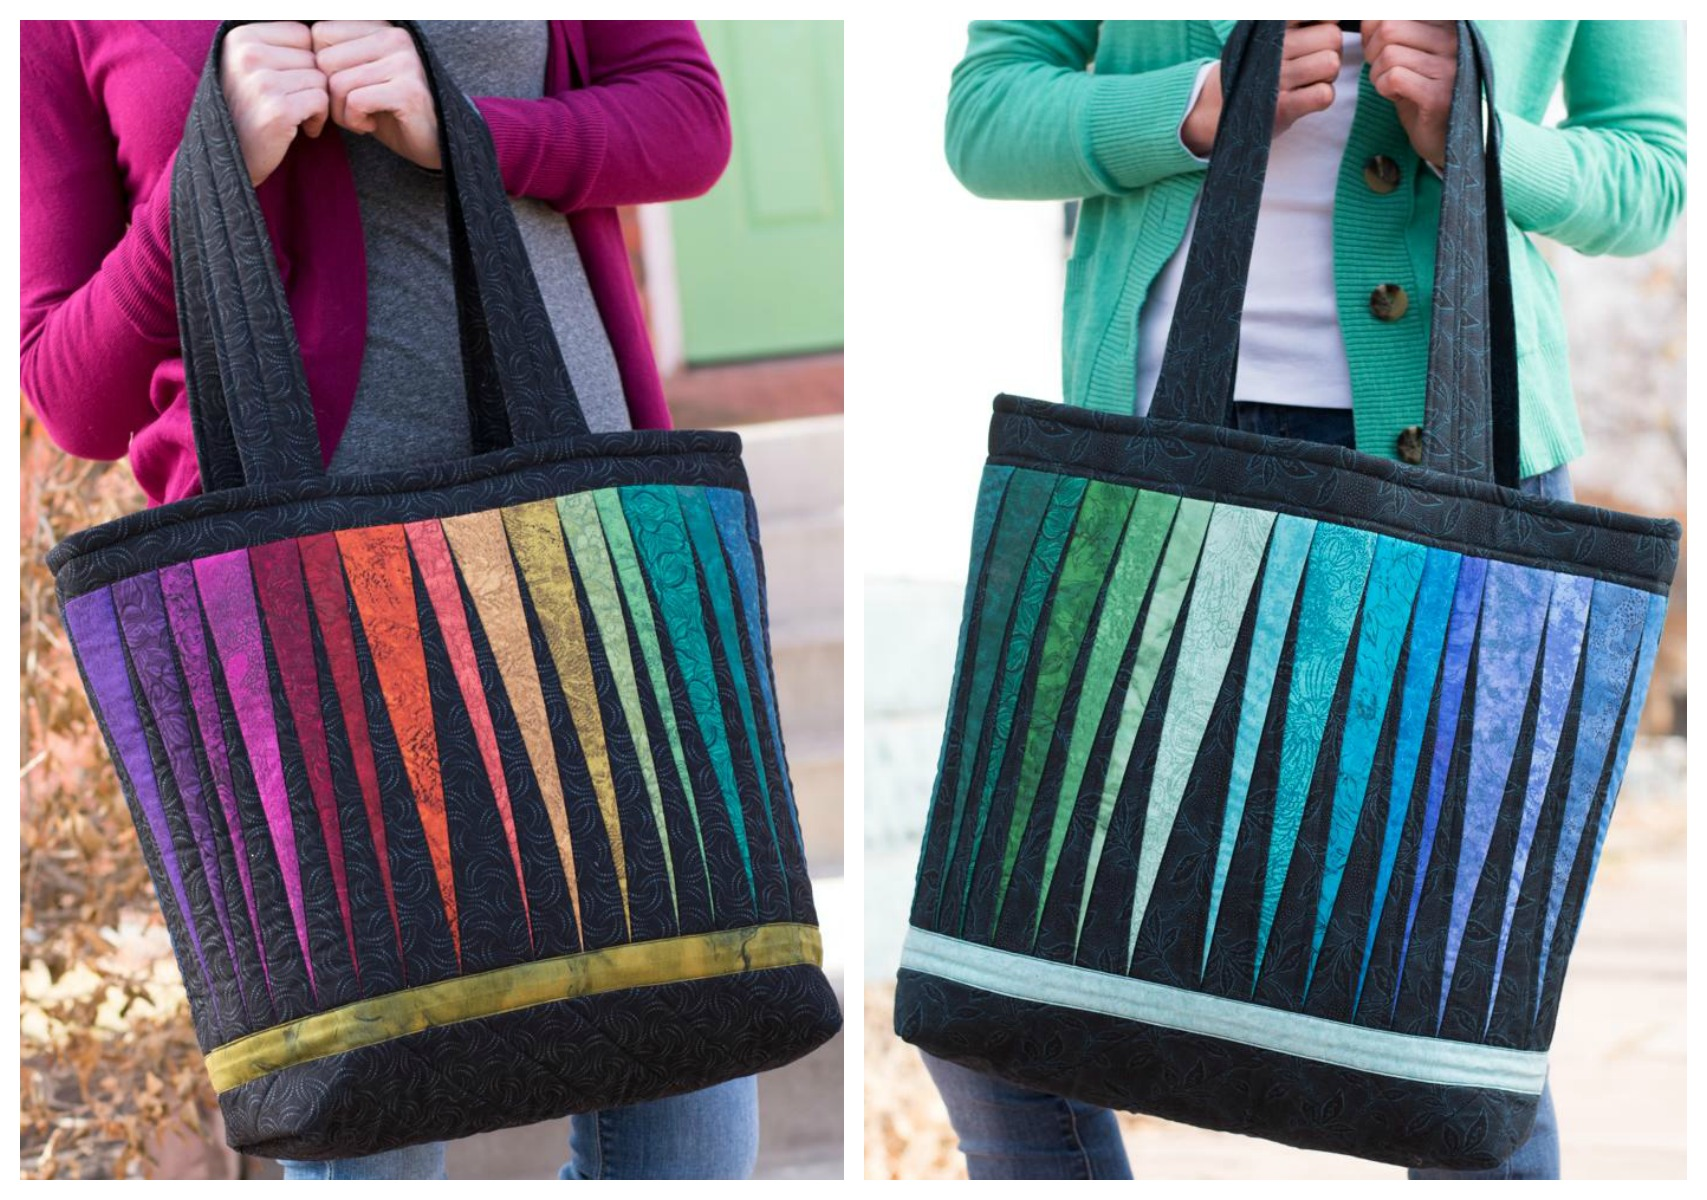 50% off Sewing Project Kit - Make Your Own Tote Bag!